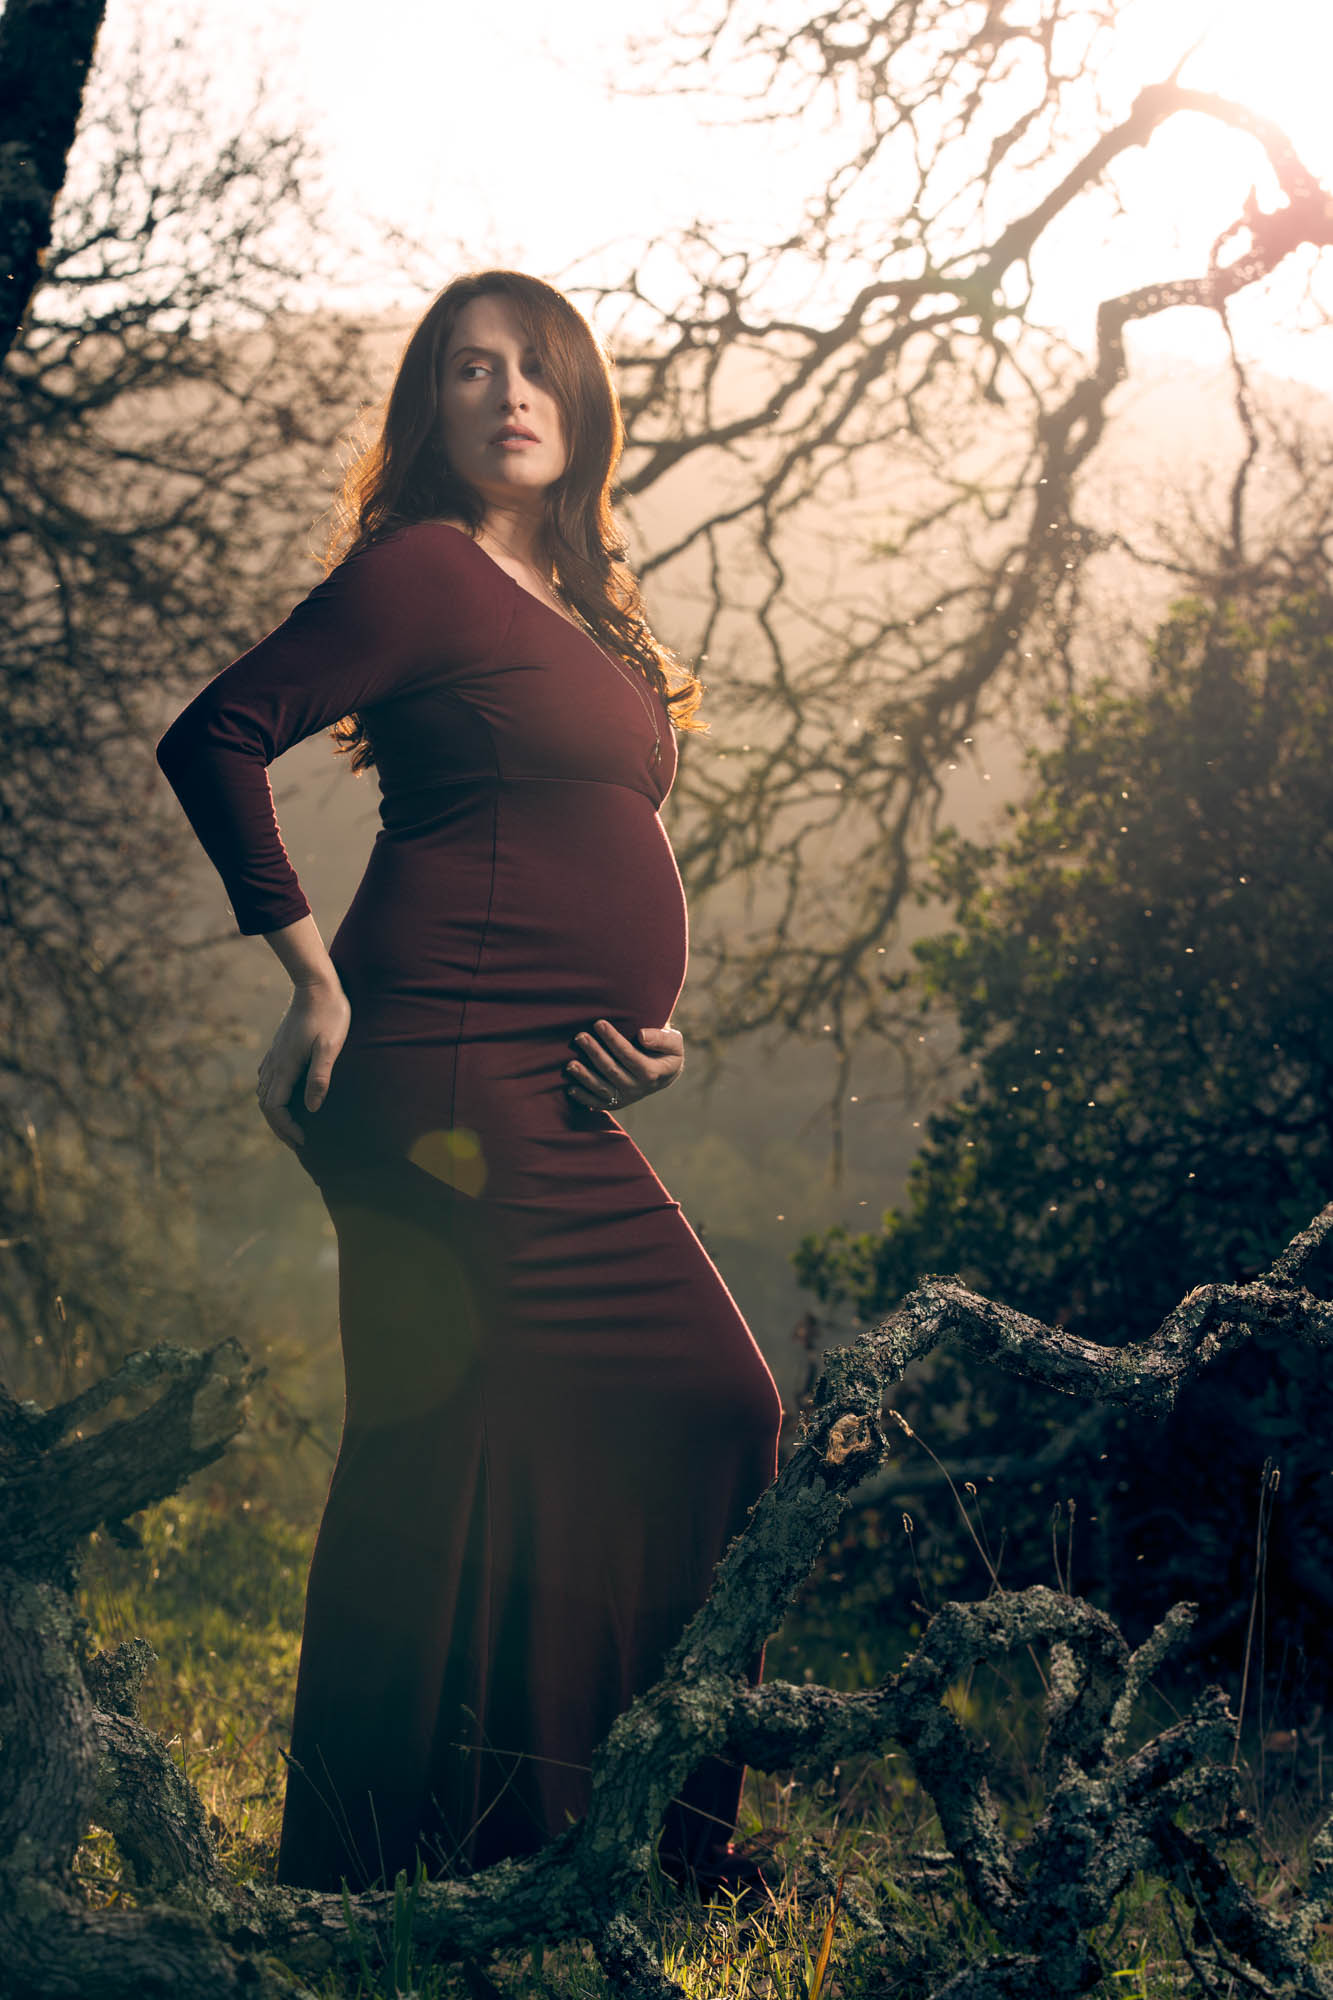 Abbey's Maternity Photo shoot with Maternity Photographer Jason Guy